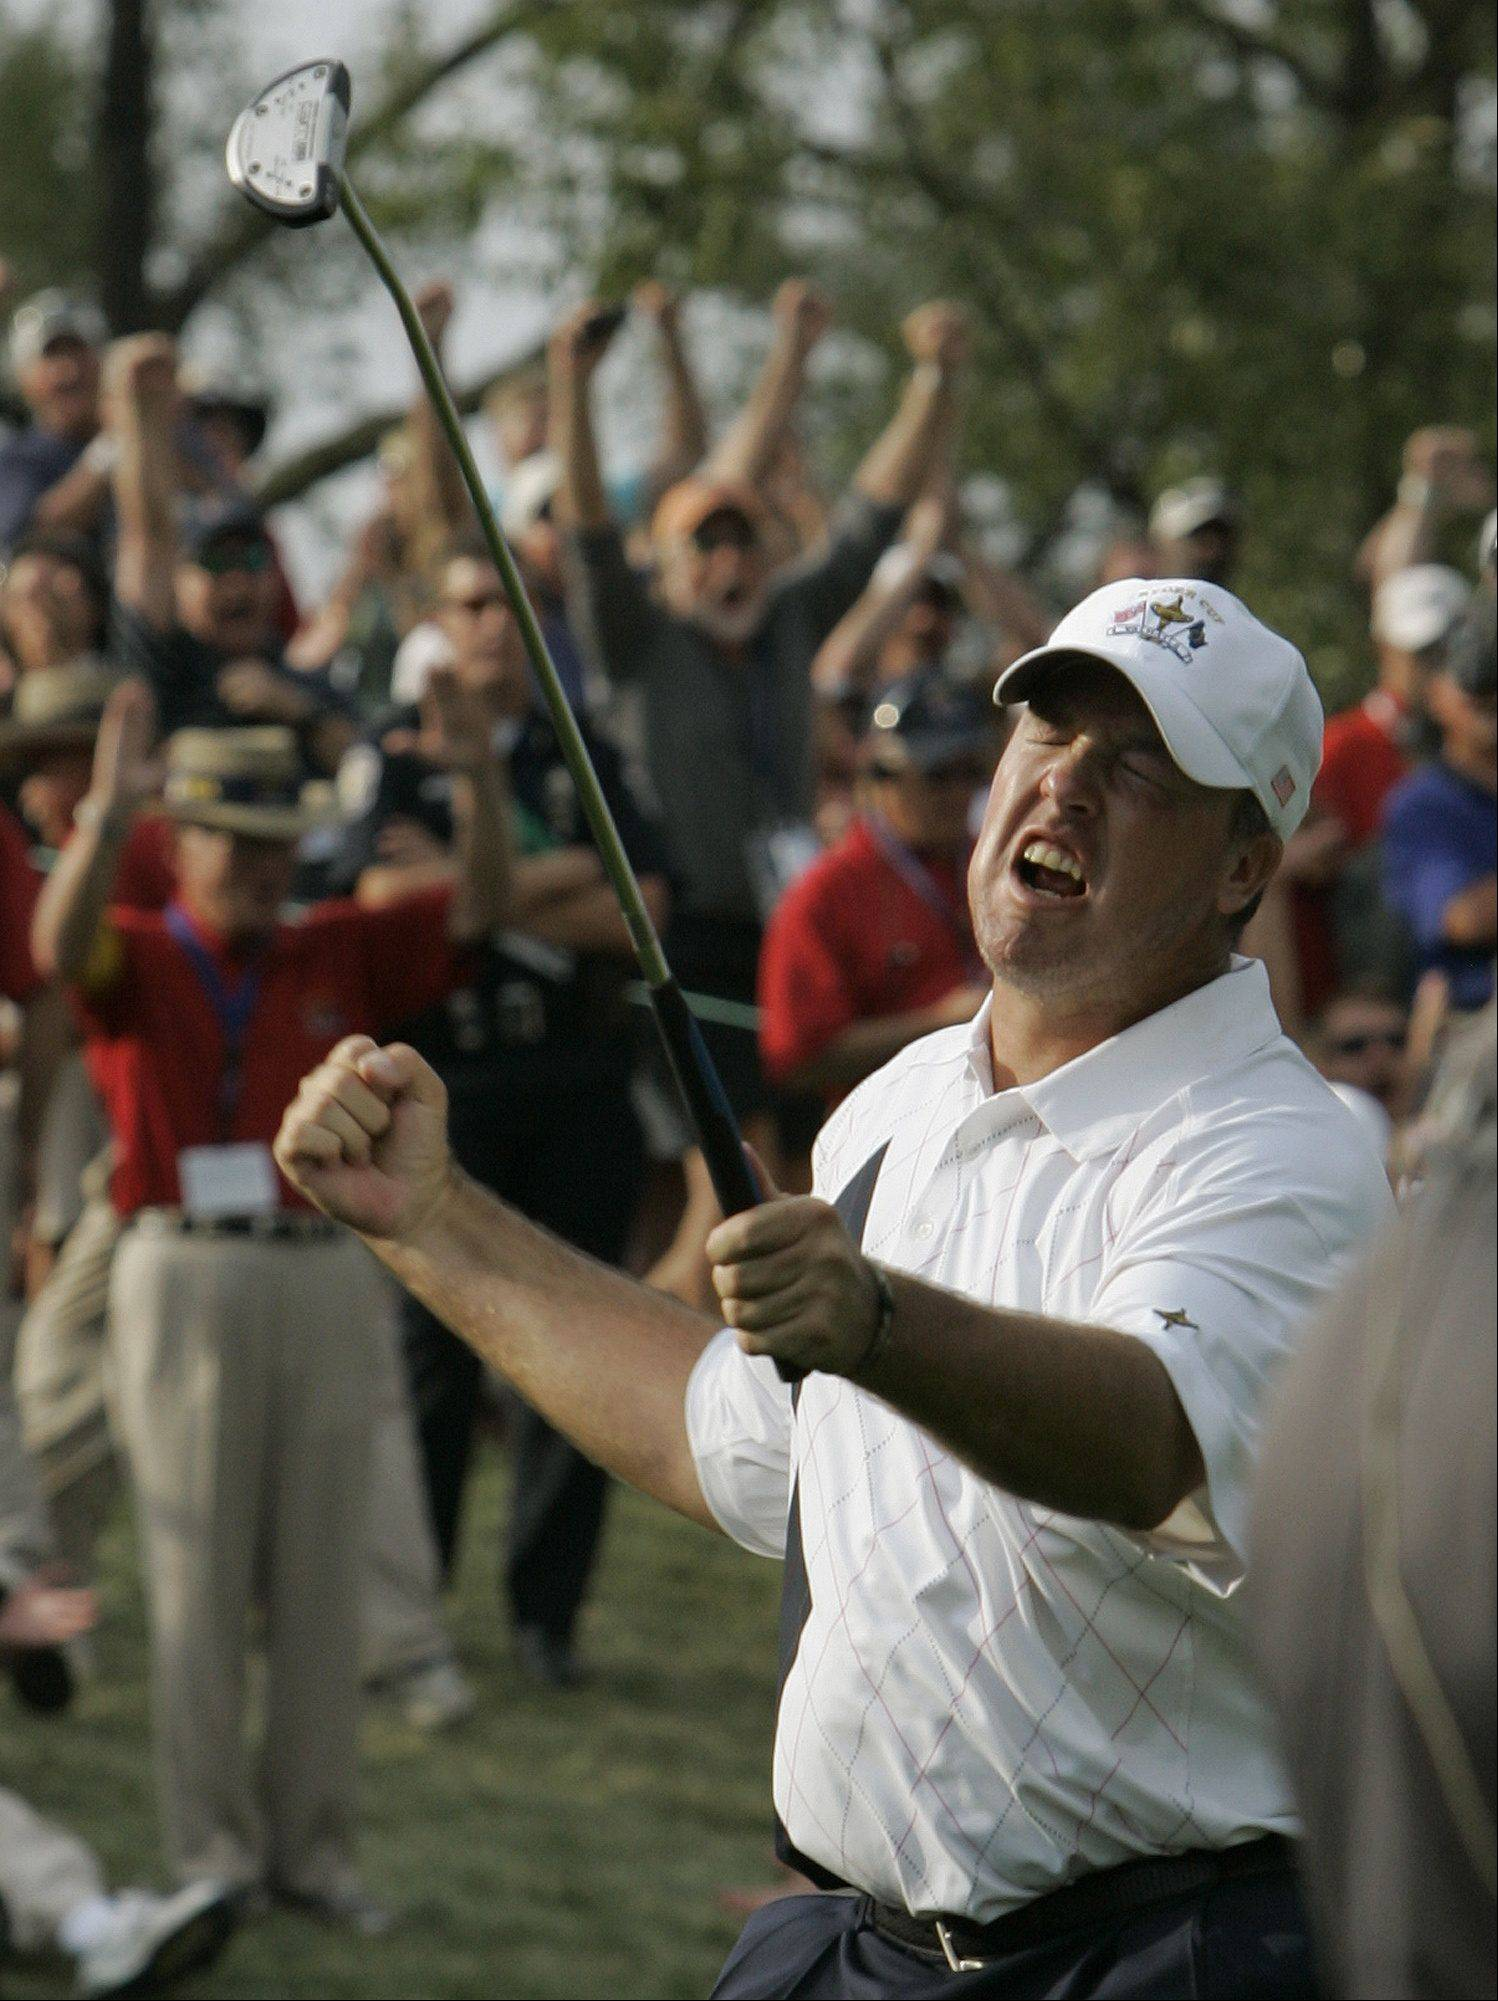 USA's Boo Weekley reacts after his birdie putt on the 12th hole during his four-ball match at the Ryder Cup golf tournament at the Valhalla Golf Club, in Louisville, Ky., Friday, Sept. 19, 2008. The colorful rookie character Weekley fueled an American victory.